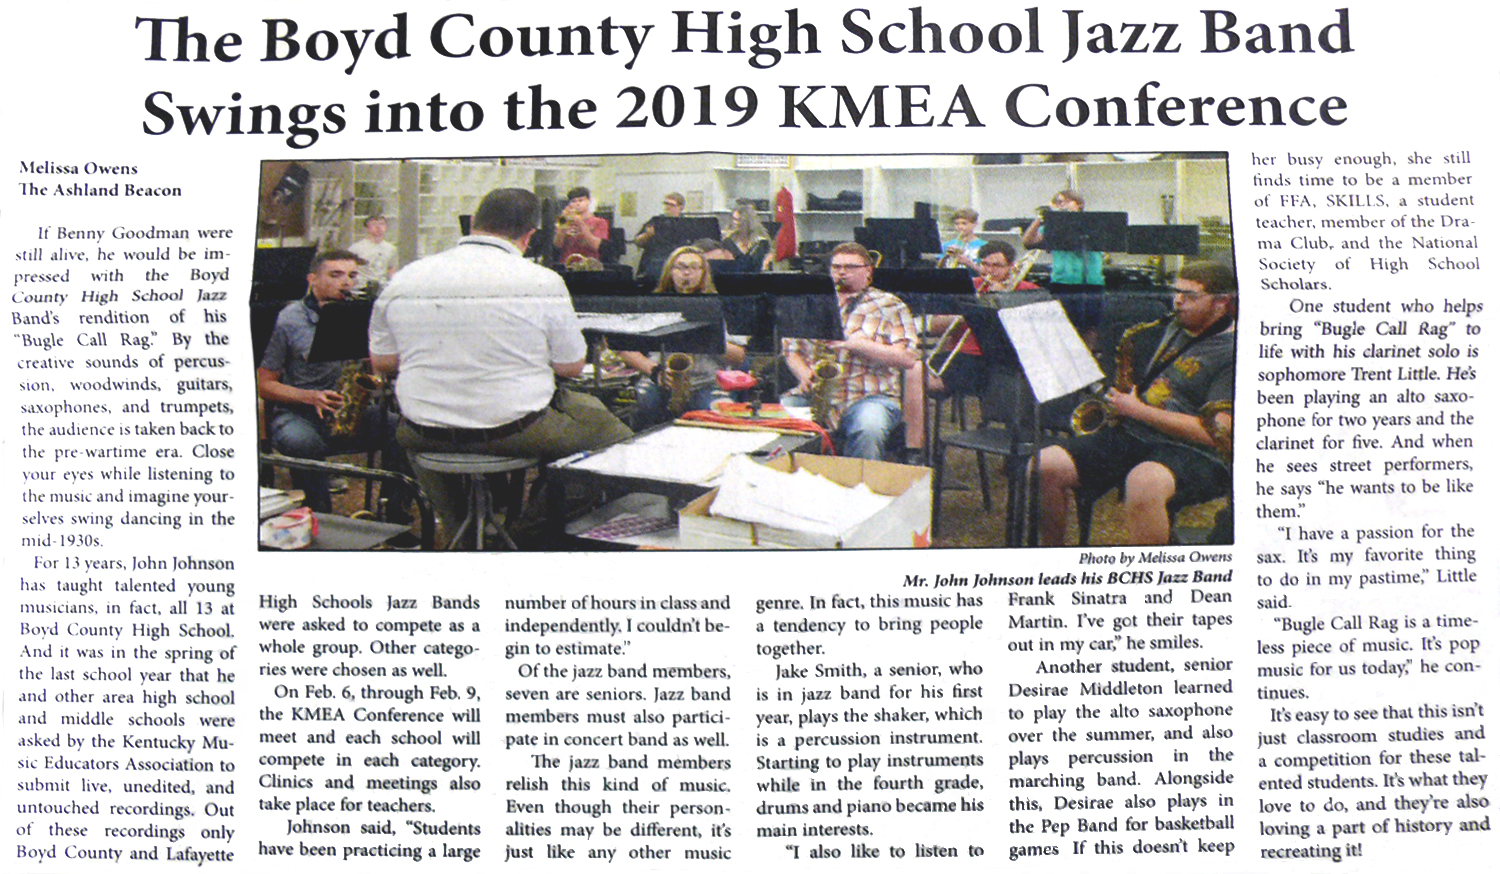 Beacon article featuring the BCHS Jazz Band who will be performing at the KMEA conference.